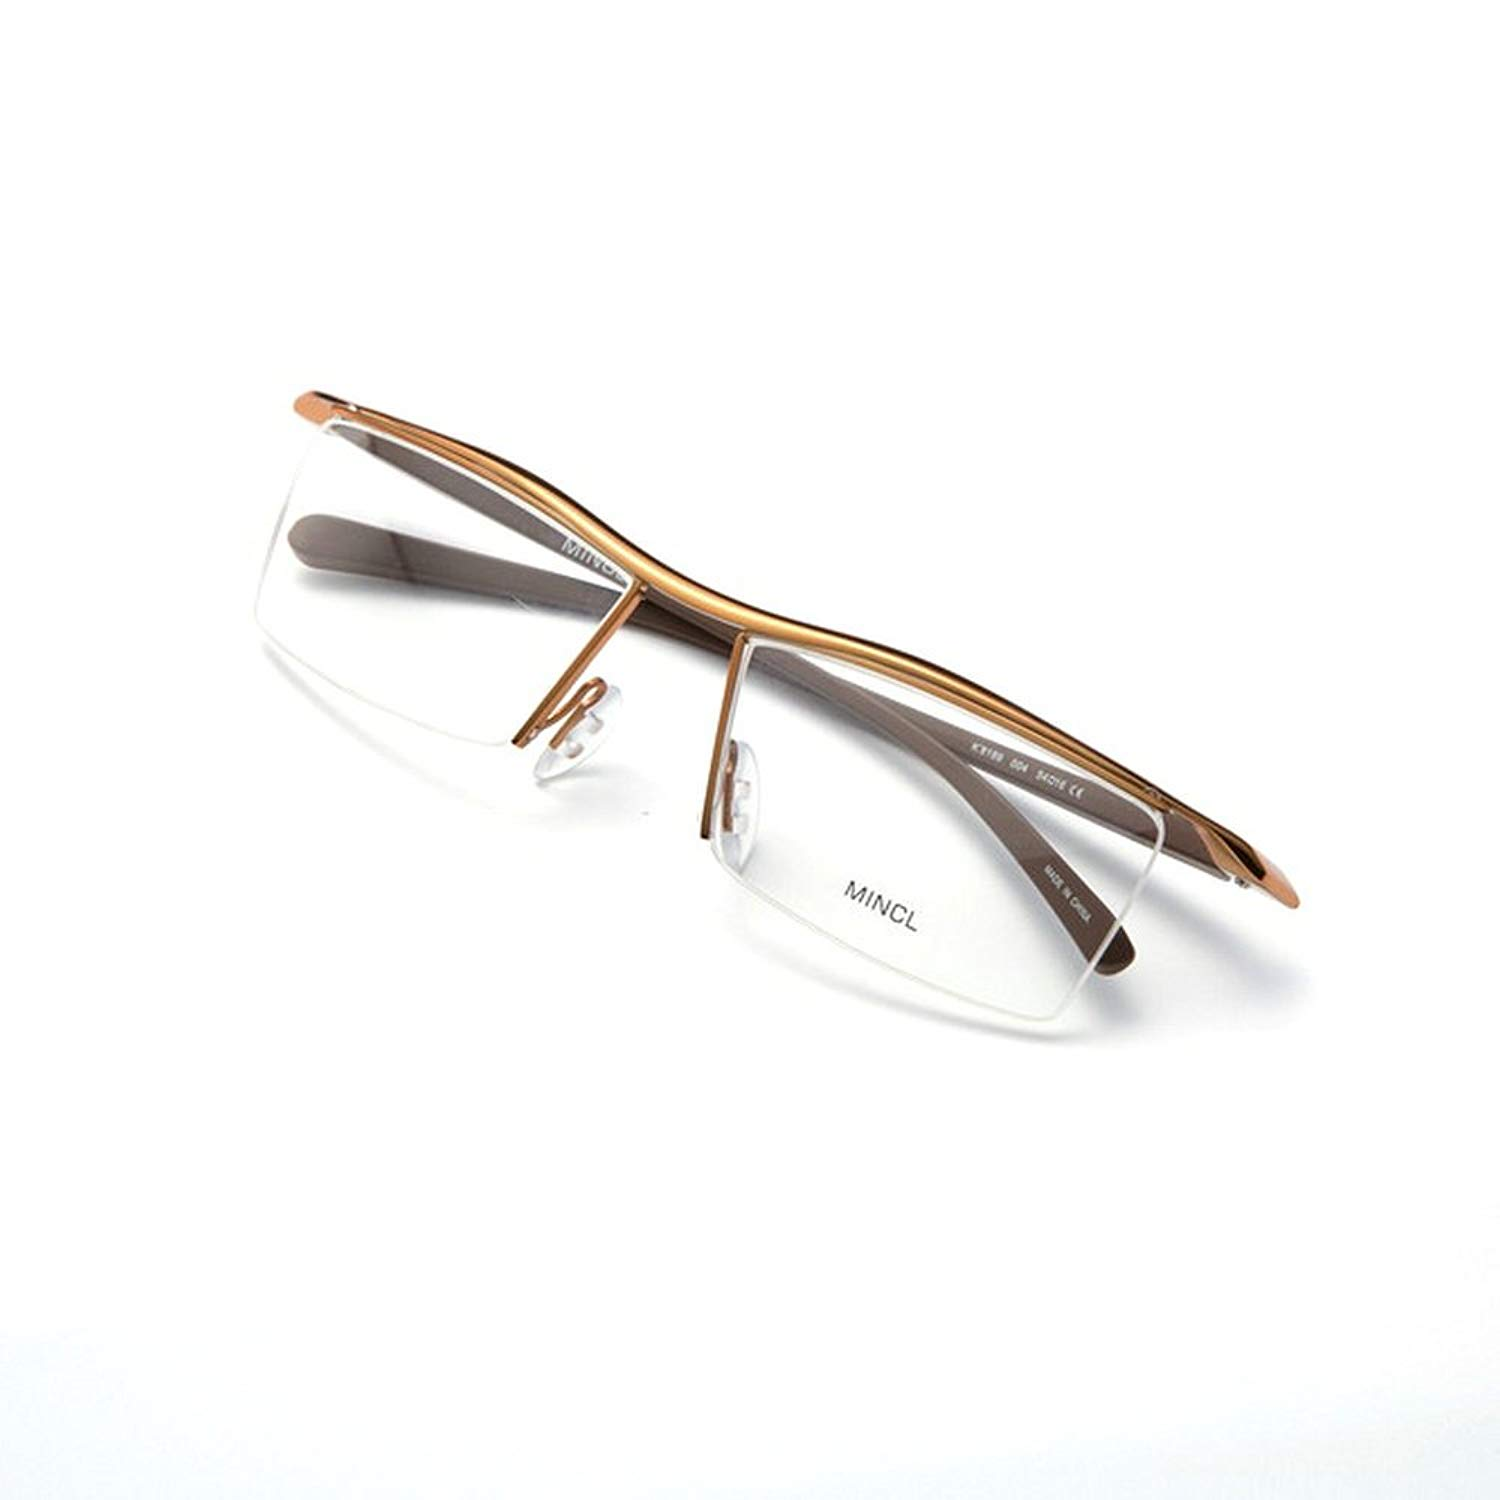 1b1f5373221 Get Quotations · MINCL  Rectangular Business Eye Glasses Rimless Metal  Frames TR90 Legs -yhl